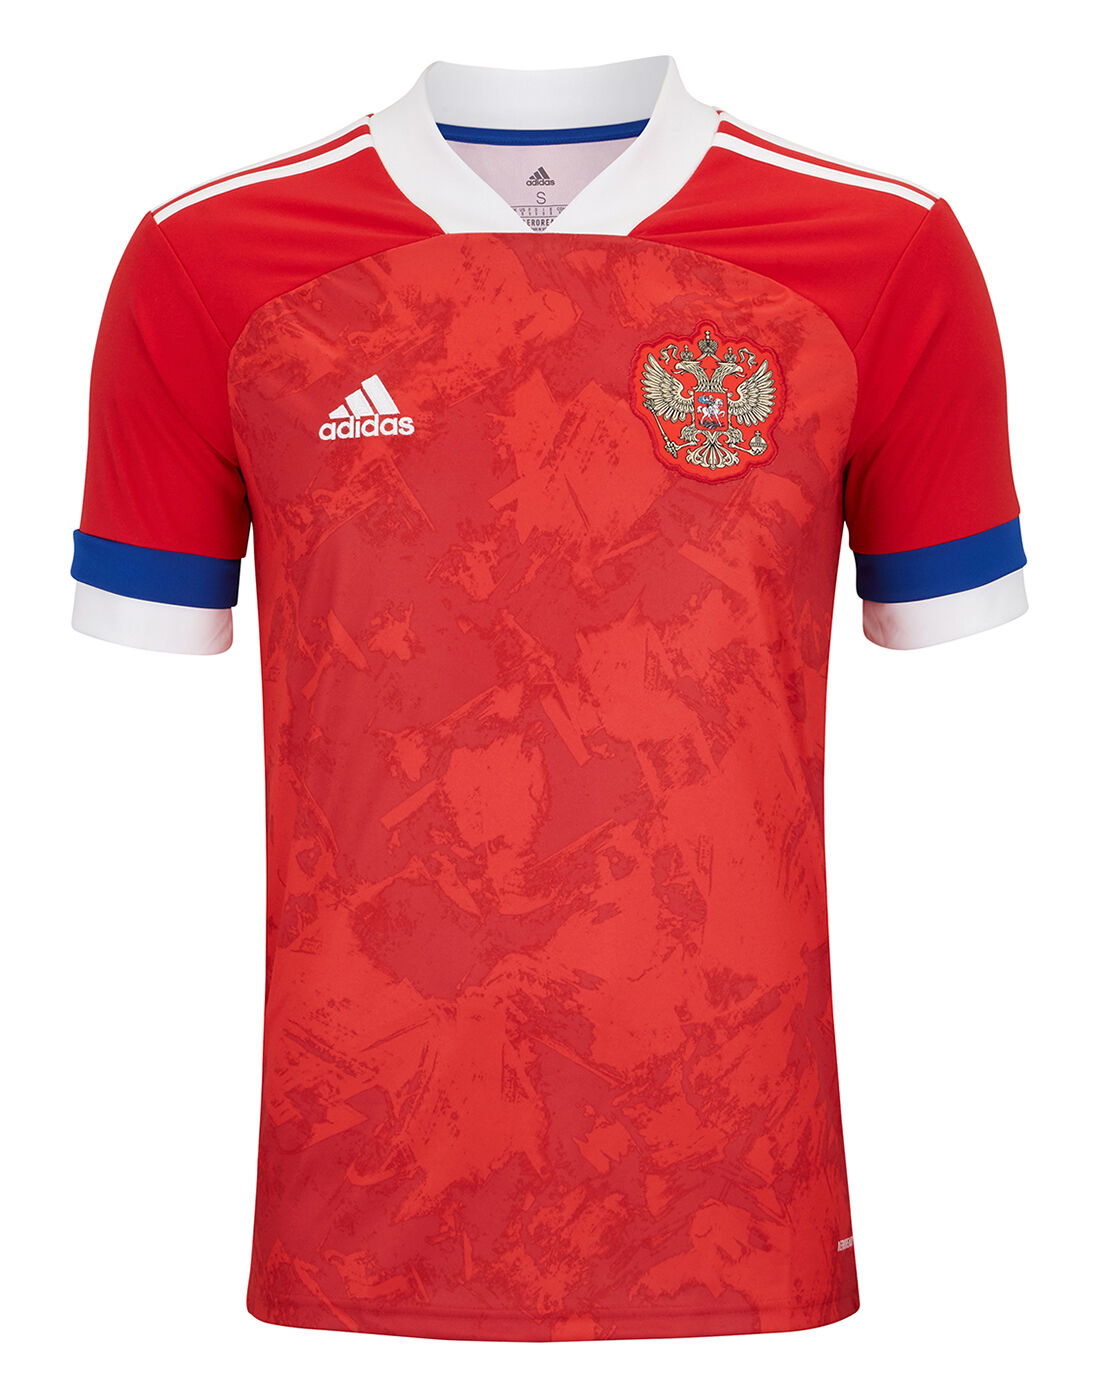 adidas Adult Russia Euro 2020 Home Jersey - Red   retro adidas i ...